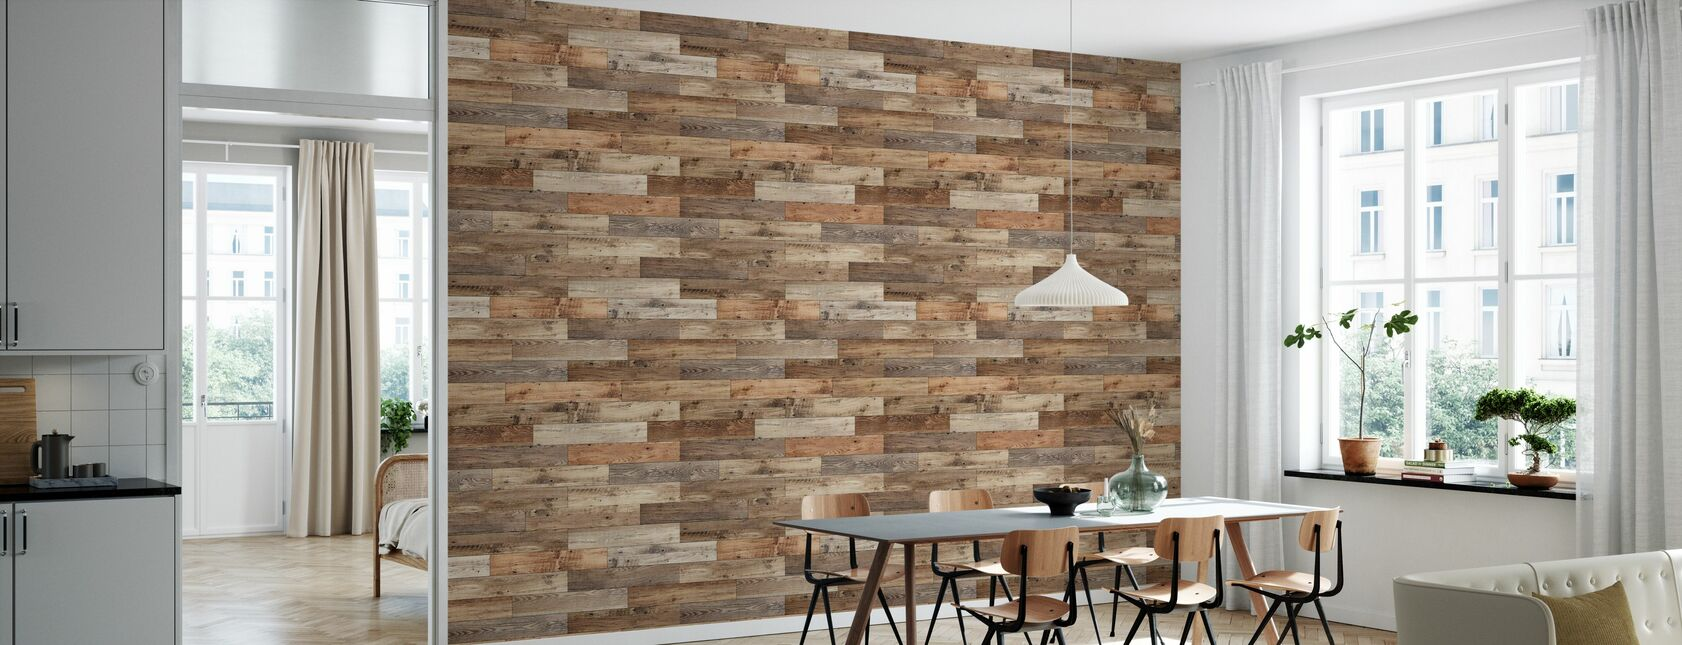 Rustic Joined Wood - Wallpaper - Kitchen